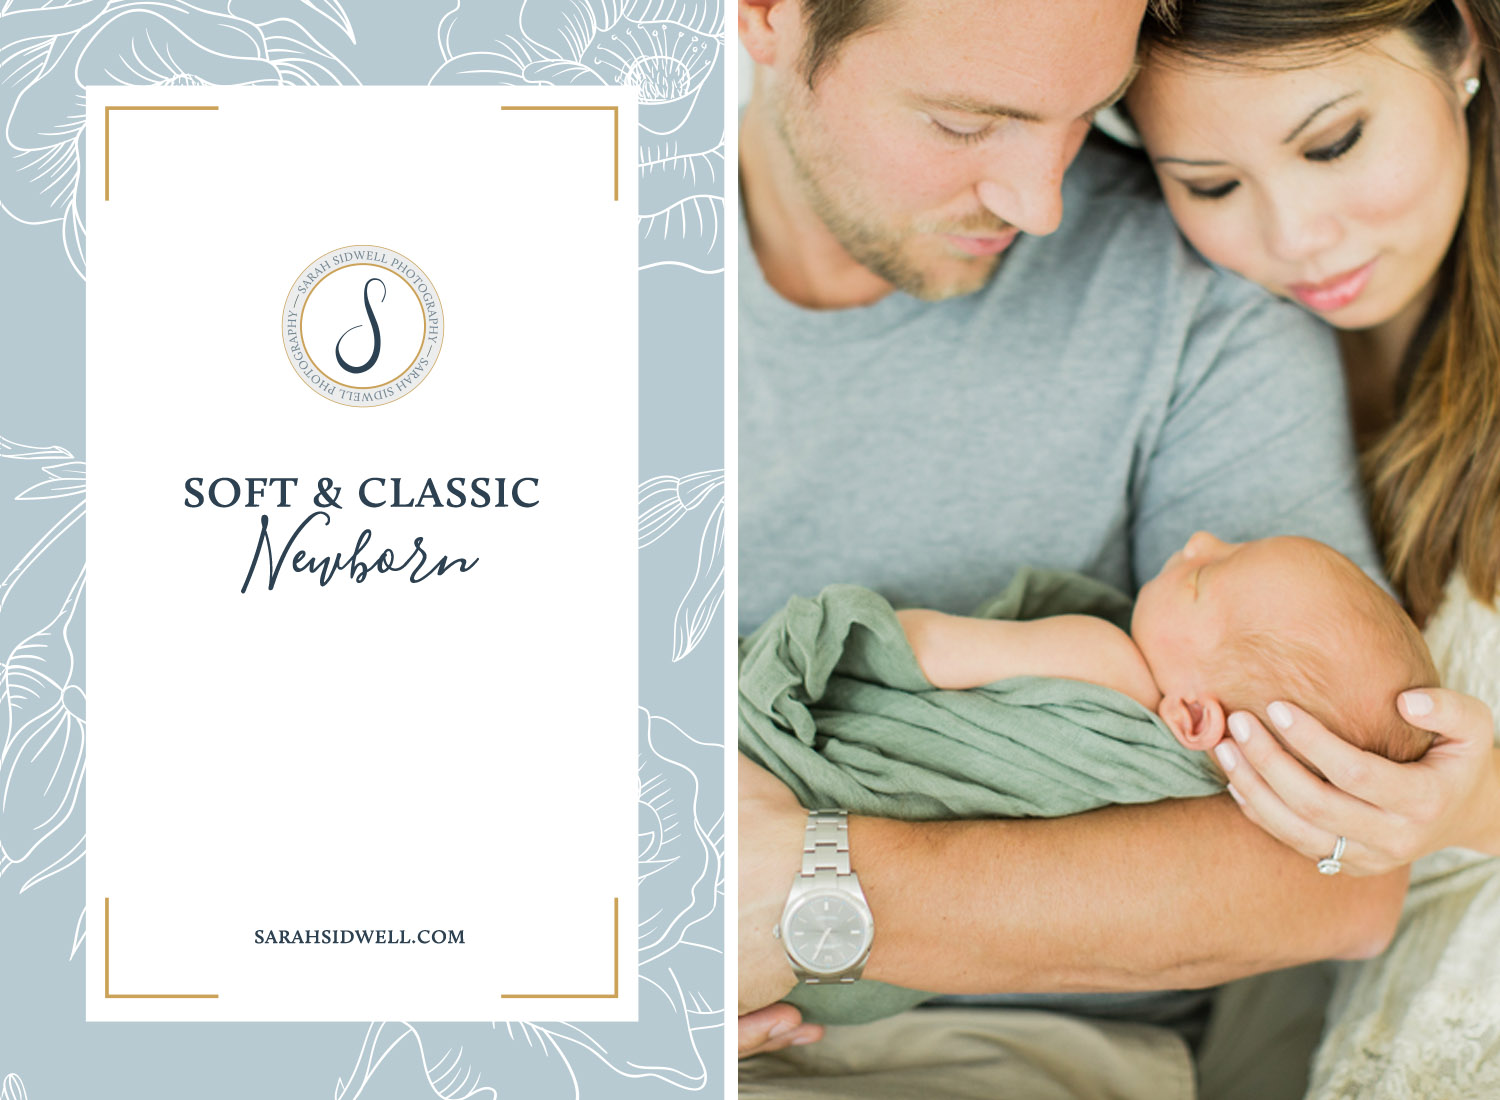 New nashville parents plan their first son's newborn baby photos to be taken by Franklin Tennesee portrait photographer at Sarah Sidwell Photography's newborn studio resulting in classic bright and natural family pho.jpg